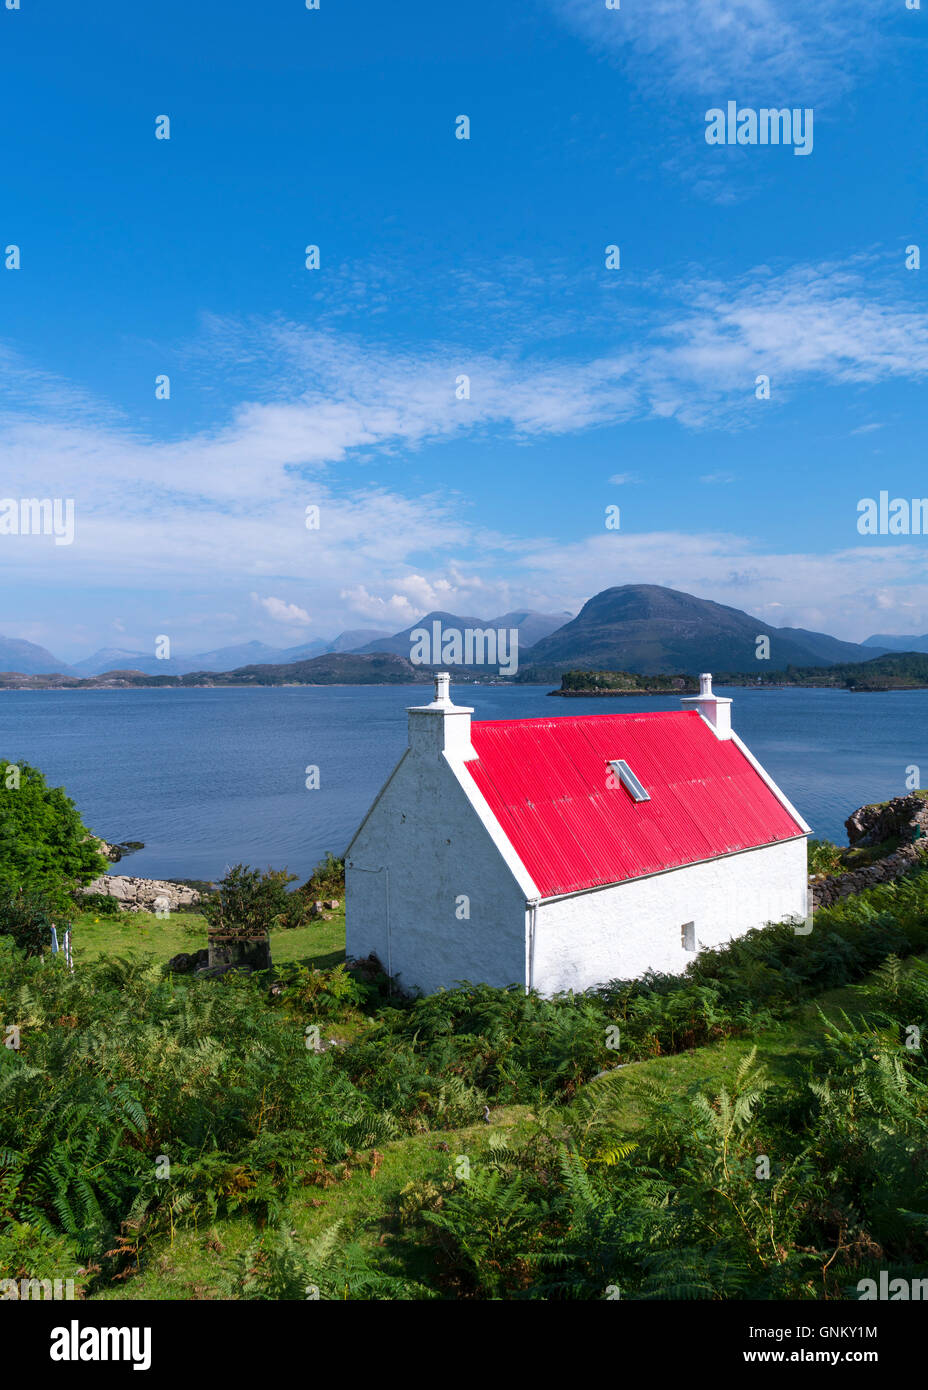 Small White Cottage With Red Roof Beside Loch Shieldaig In